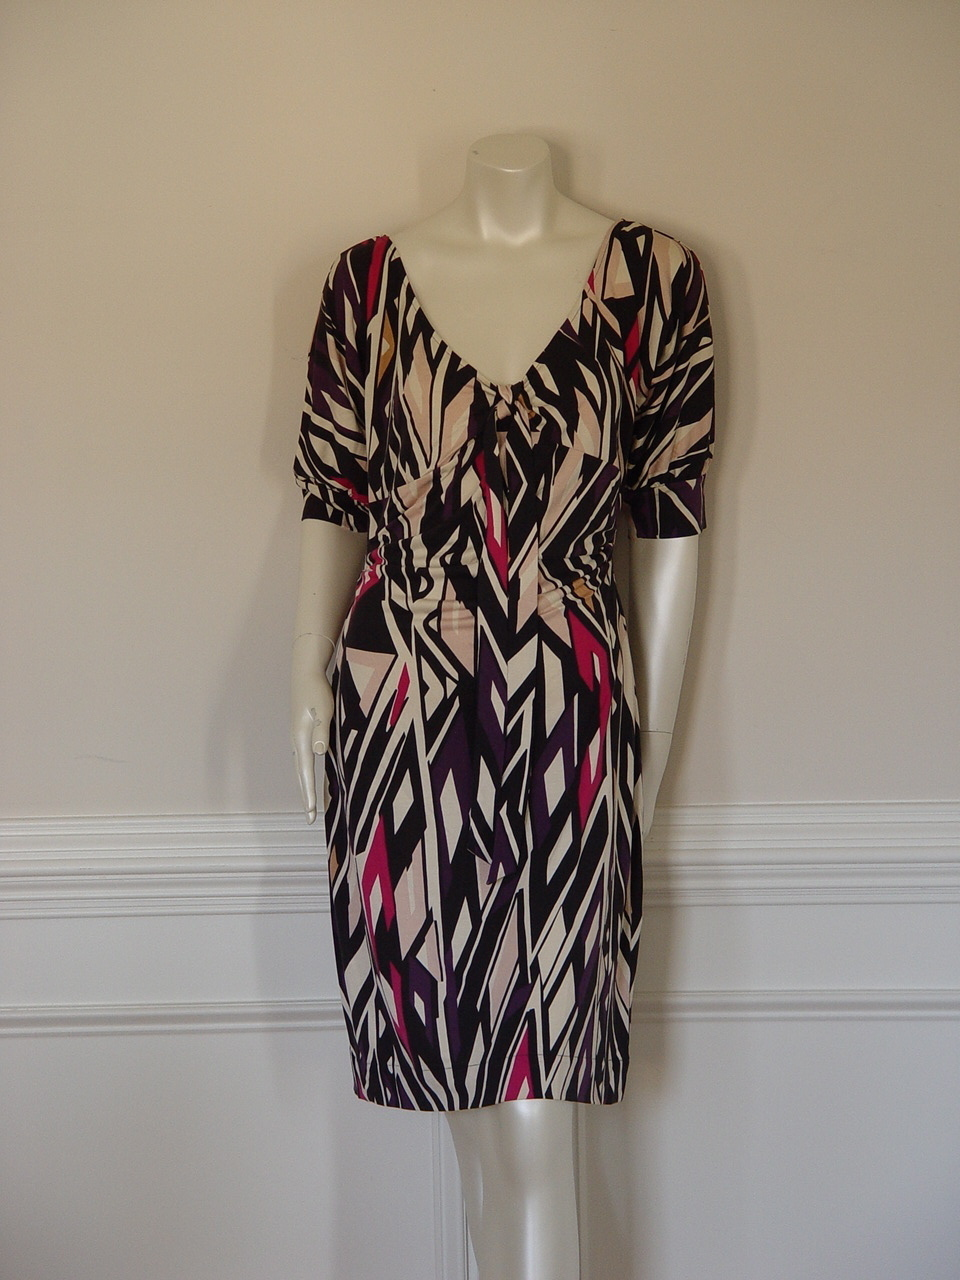 DIANE von FURSTENBERG KITT COTTON CLUB DRESS - US 12 - UK 16